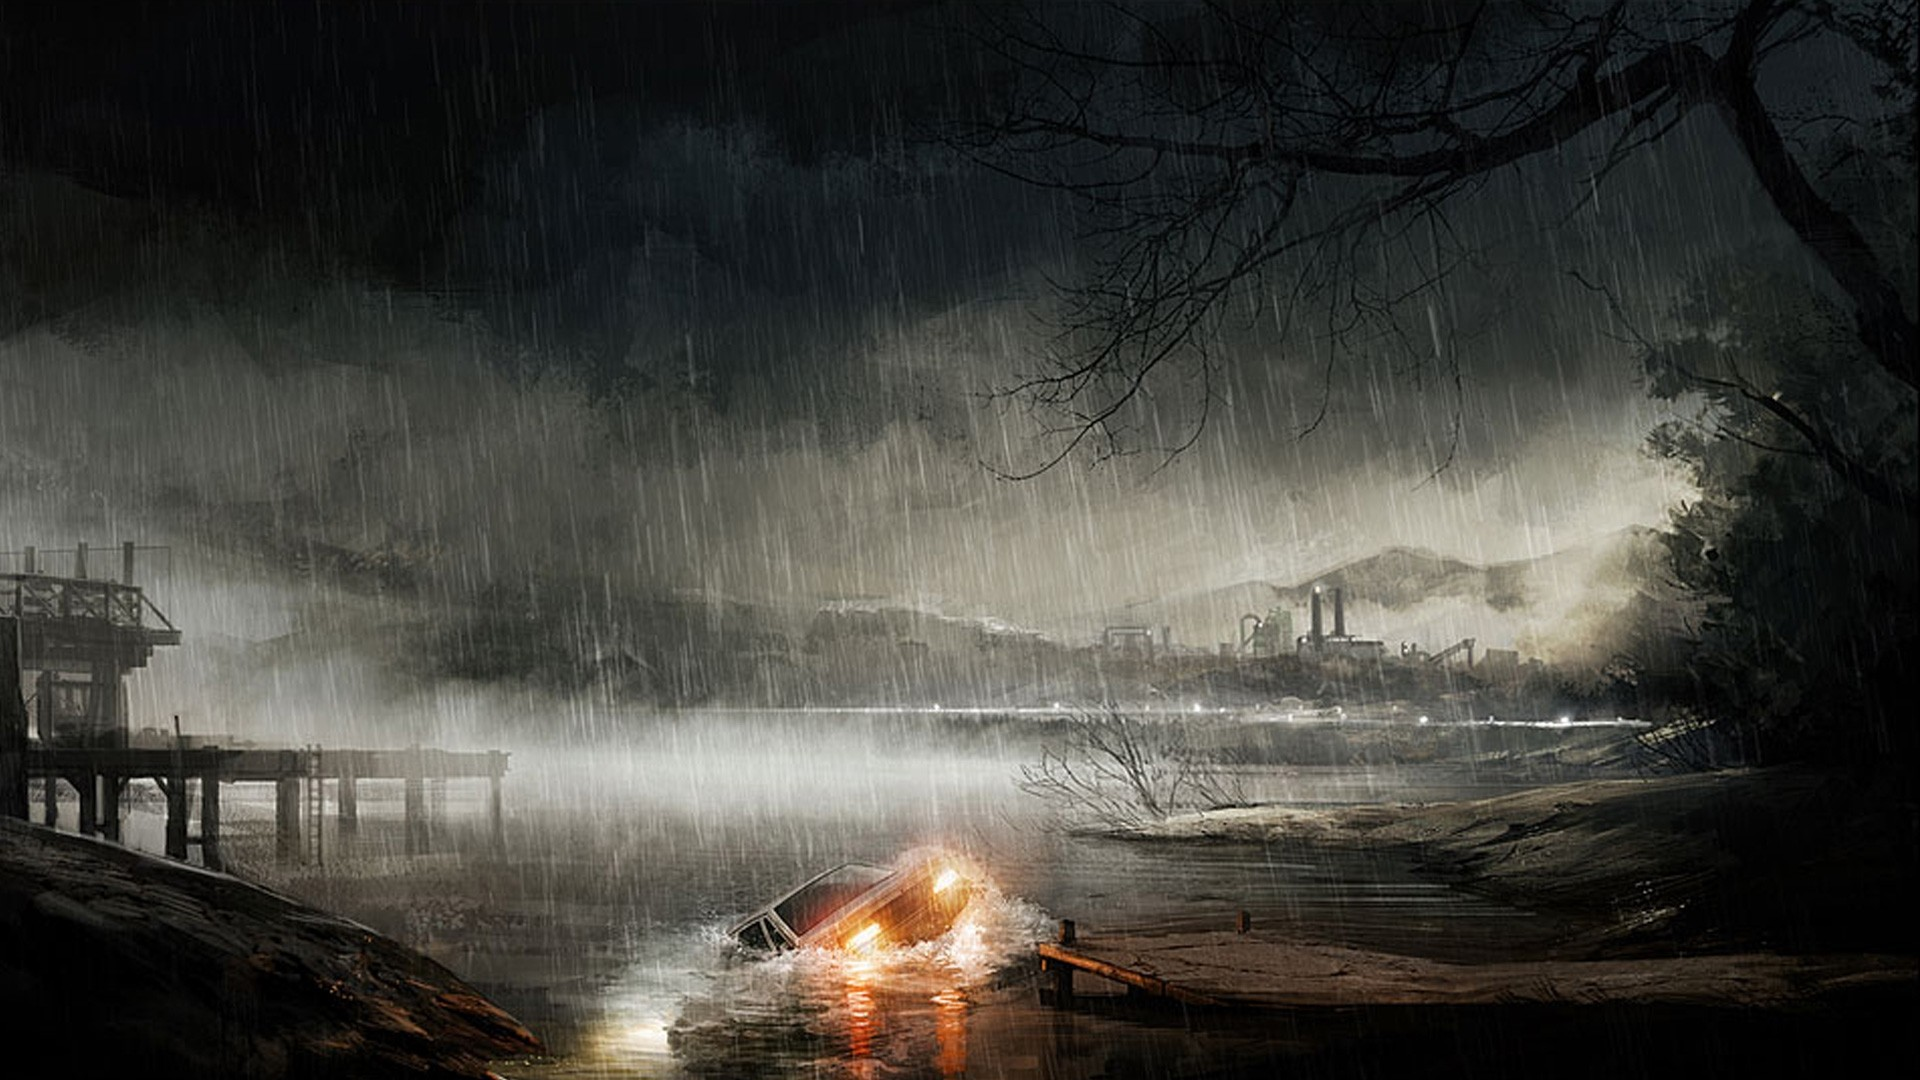 Rain Art wallpaper for desktop